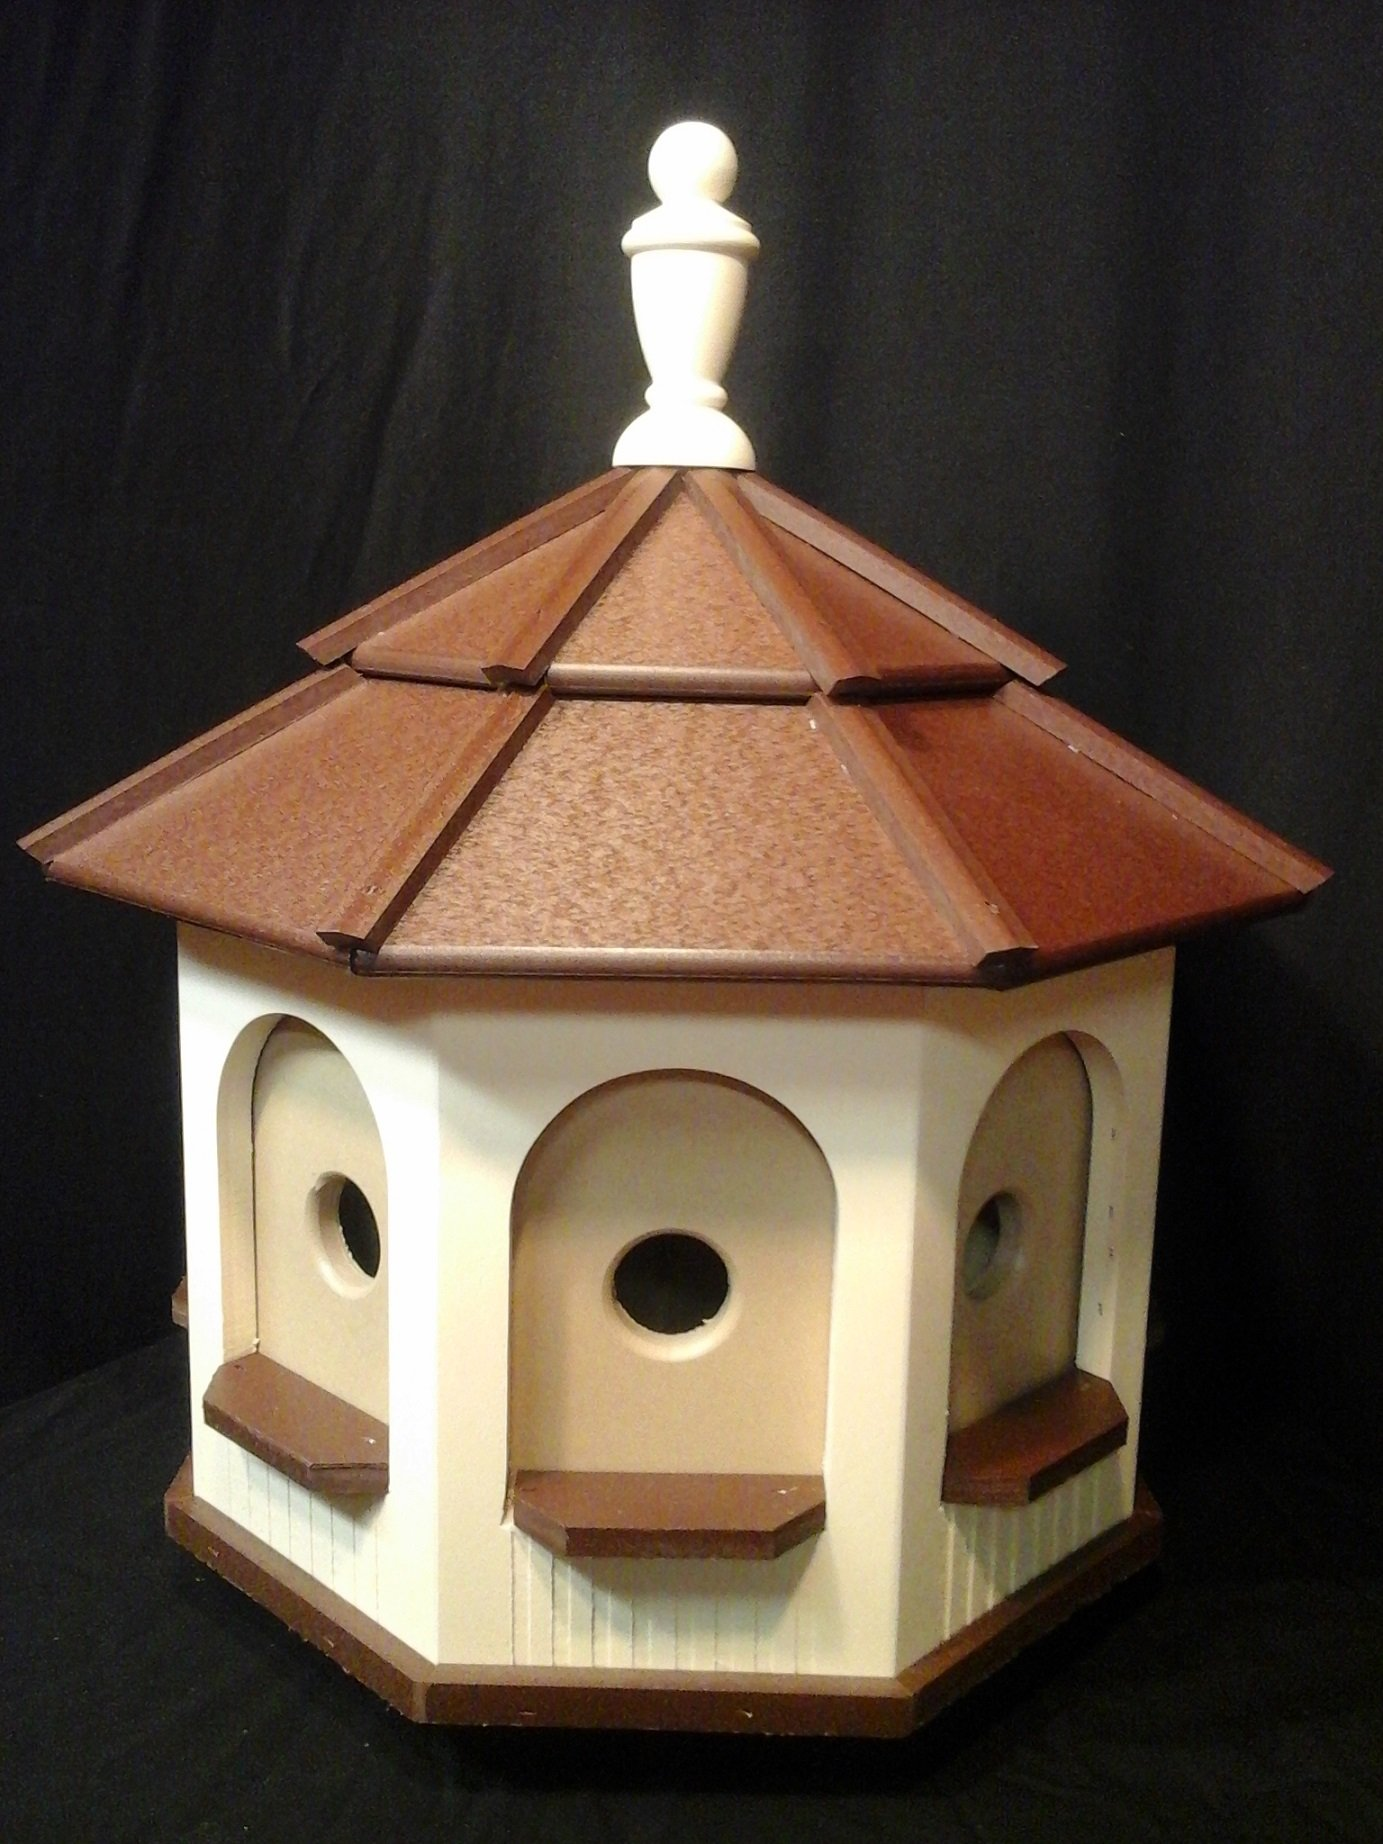 Large Poly Handcrafted Handmade Homemade Birdhouse Garden Ivory & Brown Roof